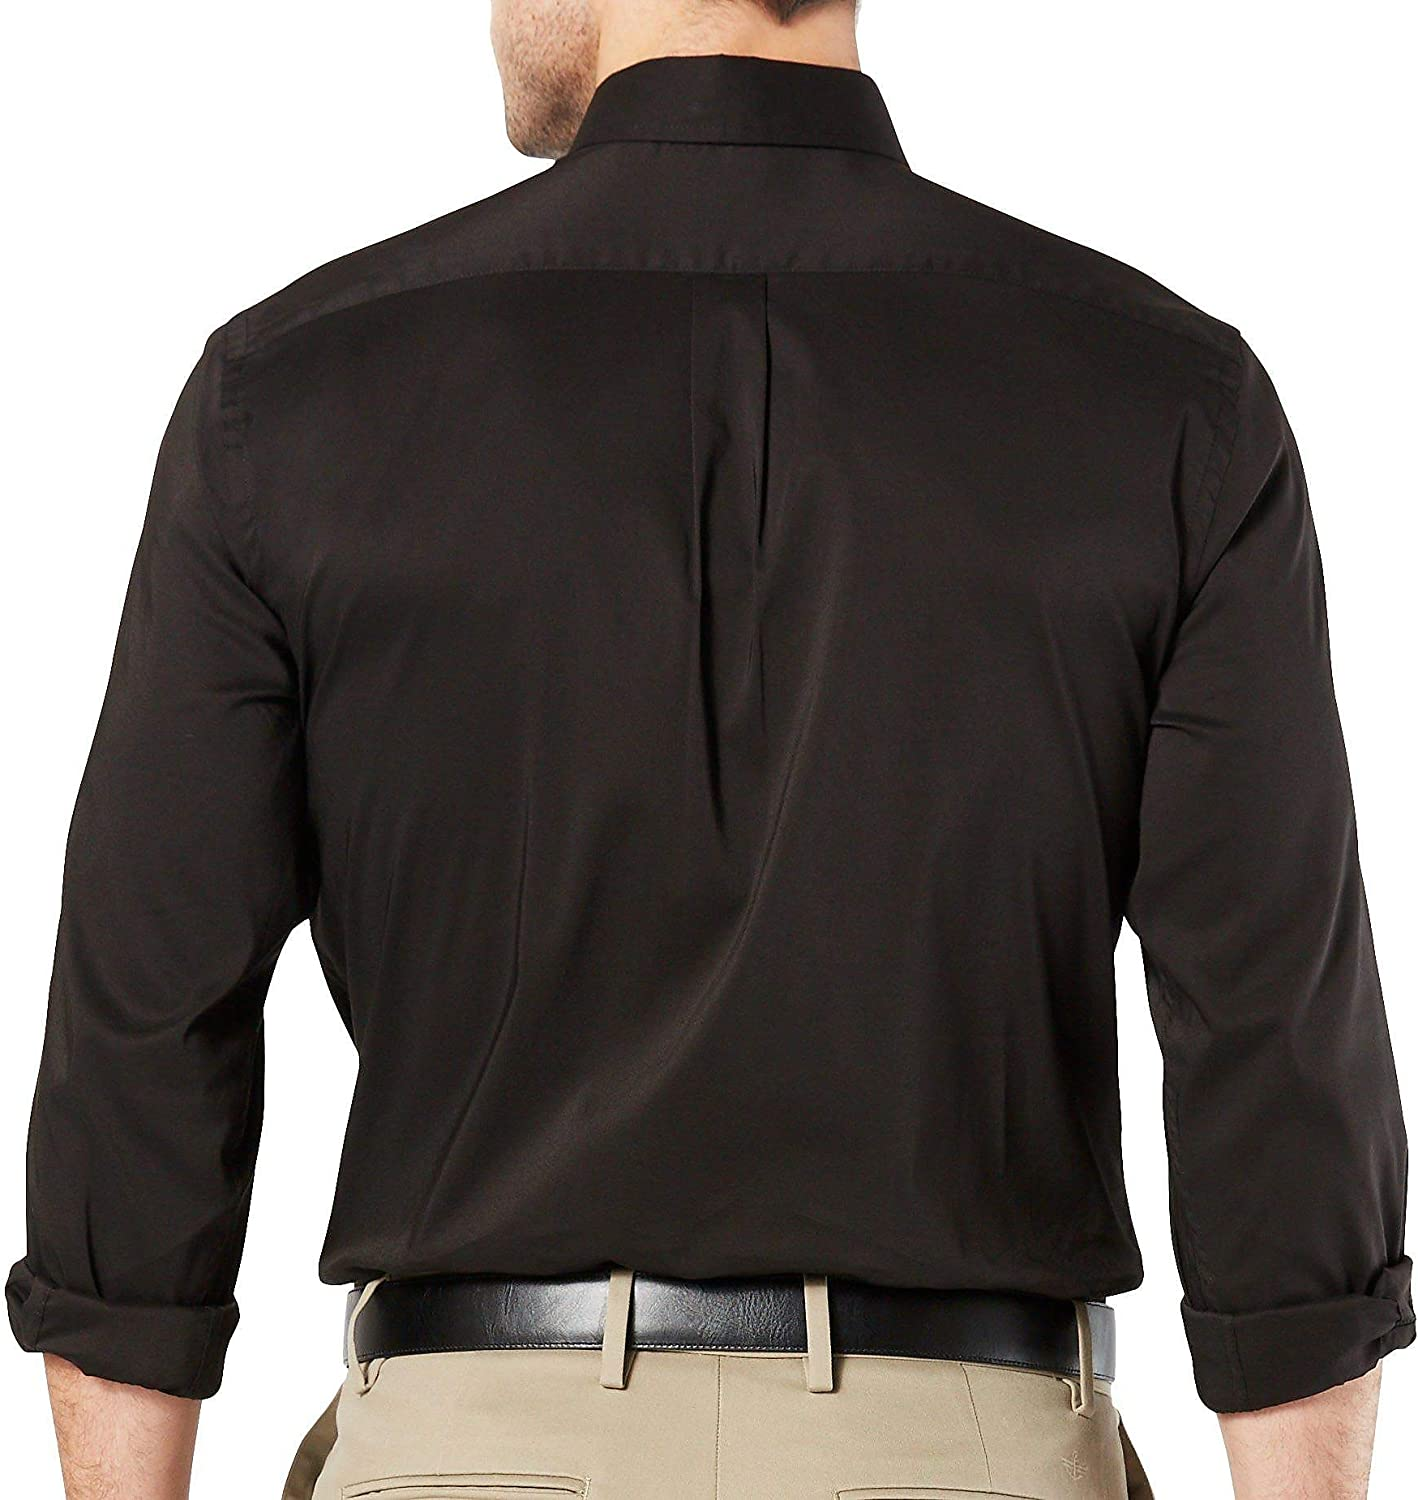 dockers Mens Comfort Stretch No Wrinkle Long Sleeve Button Front Shirt Button Down Shirt